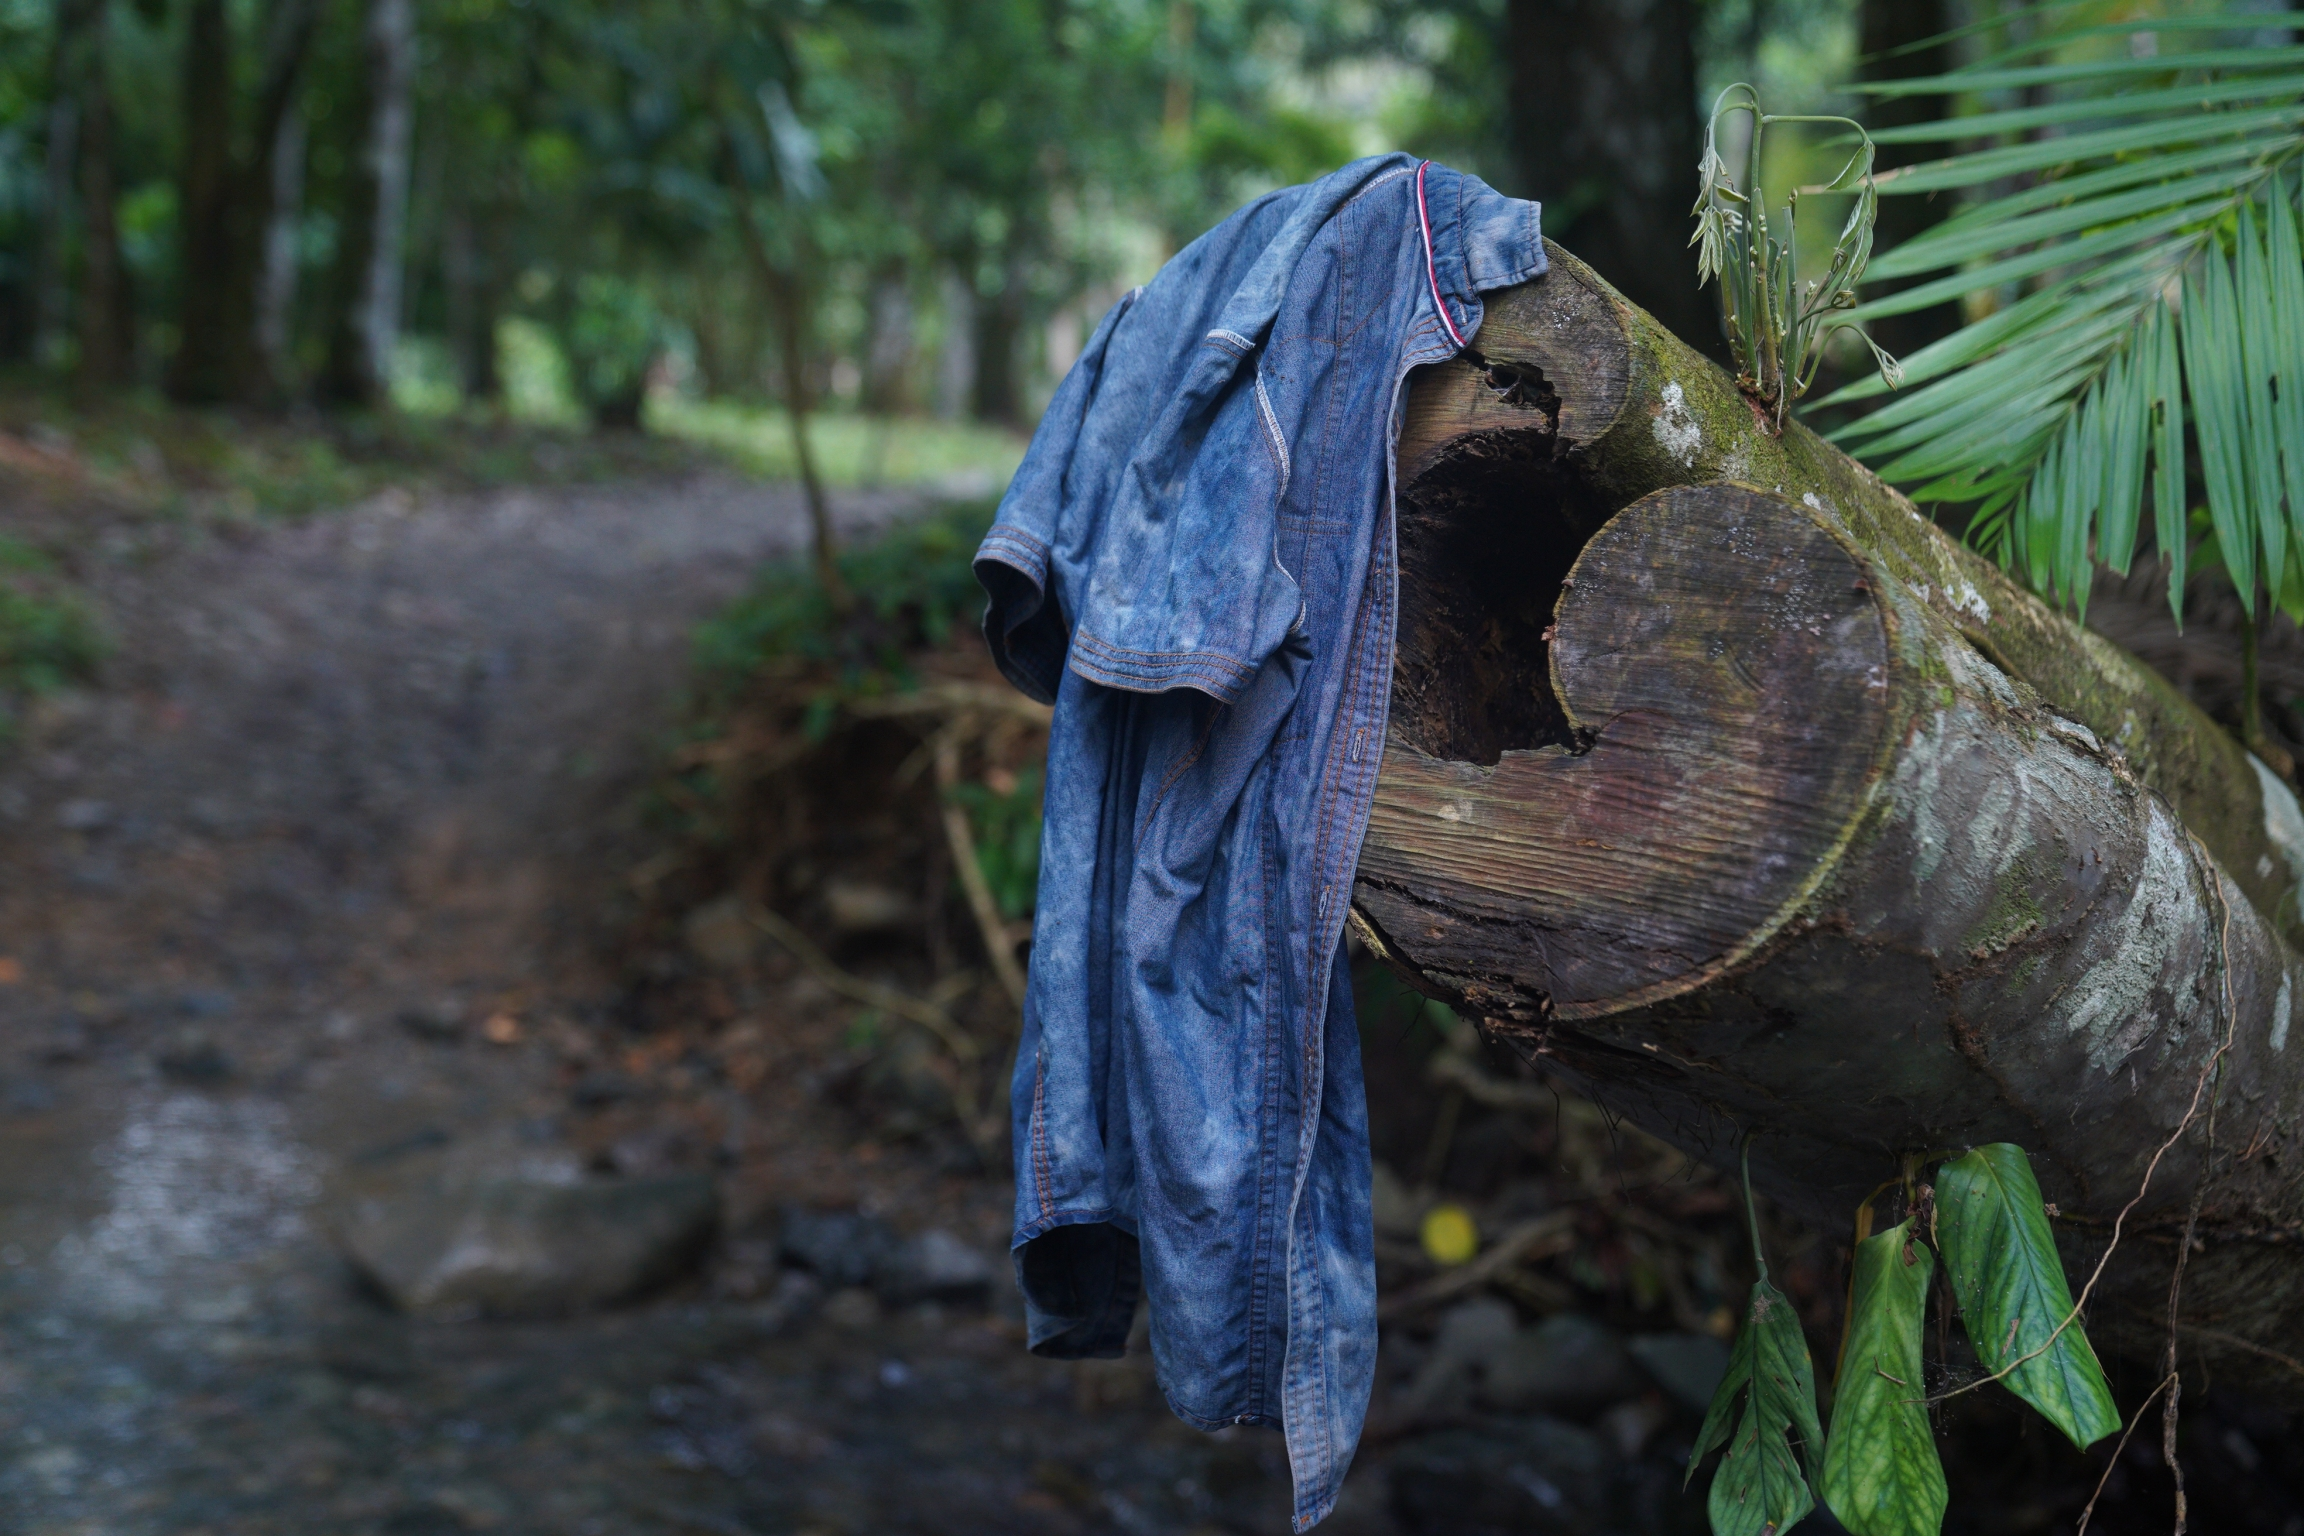 Migrants start to shed some of their belongings as they begin to trek through the Darien Gap